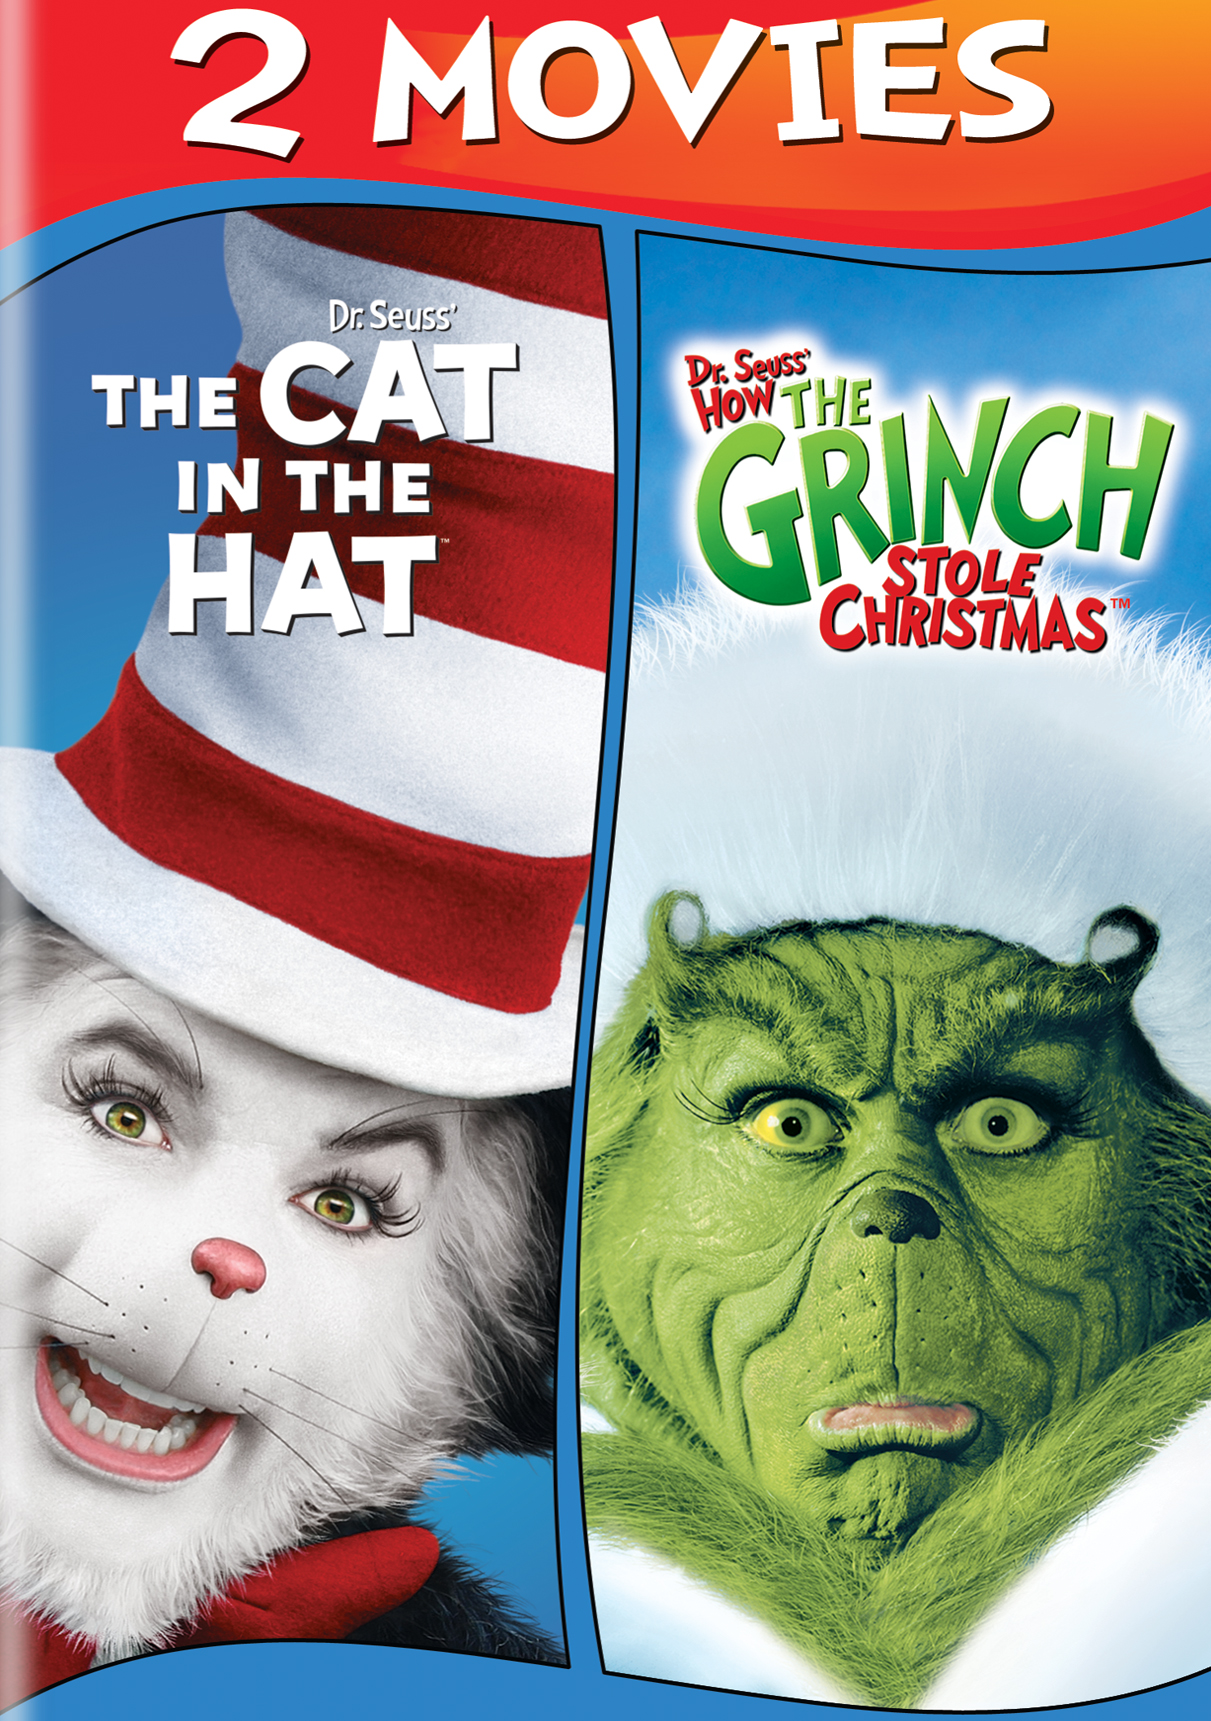 Dr Seuss The Cat In The Hat Dr Seuss How The Grinch